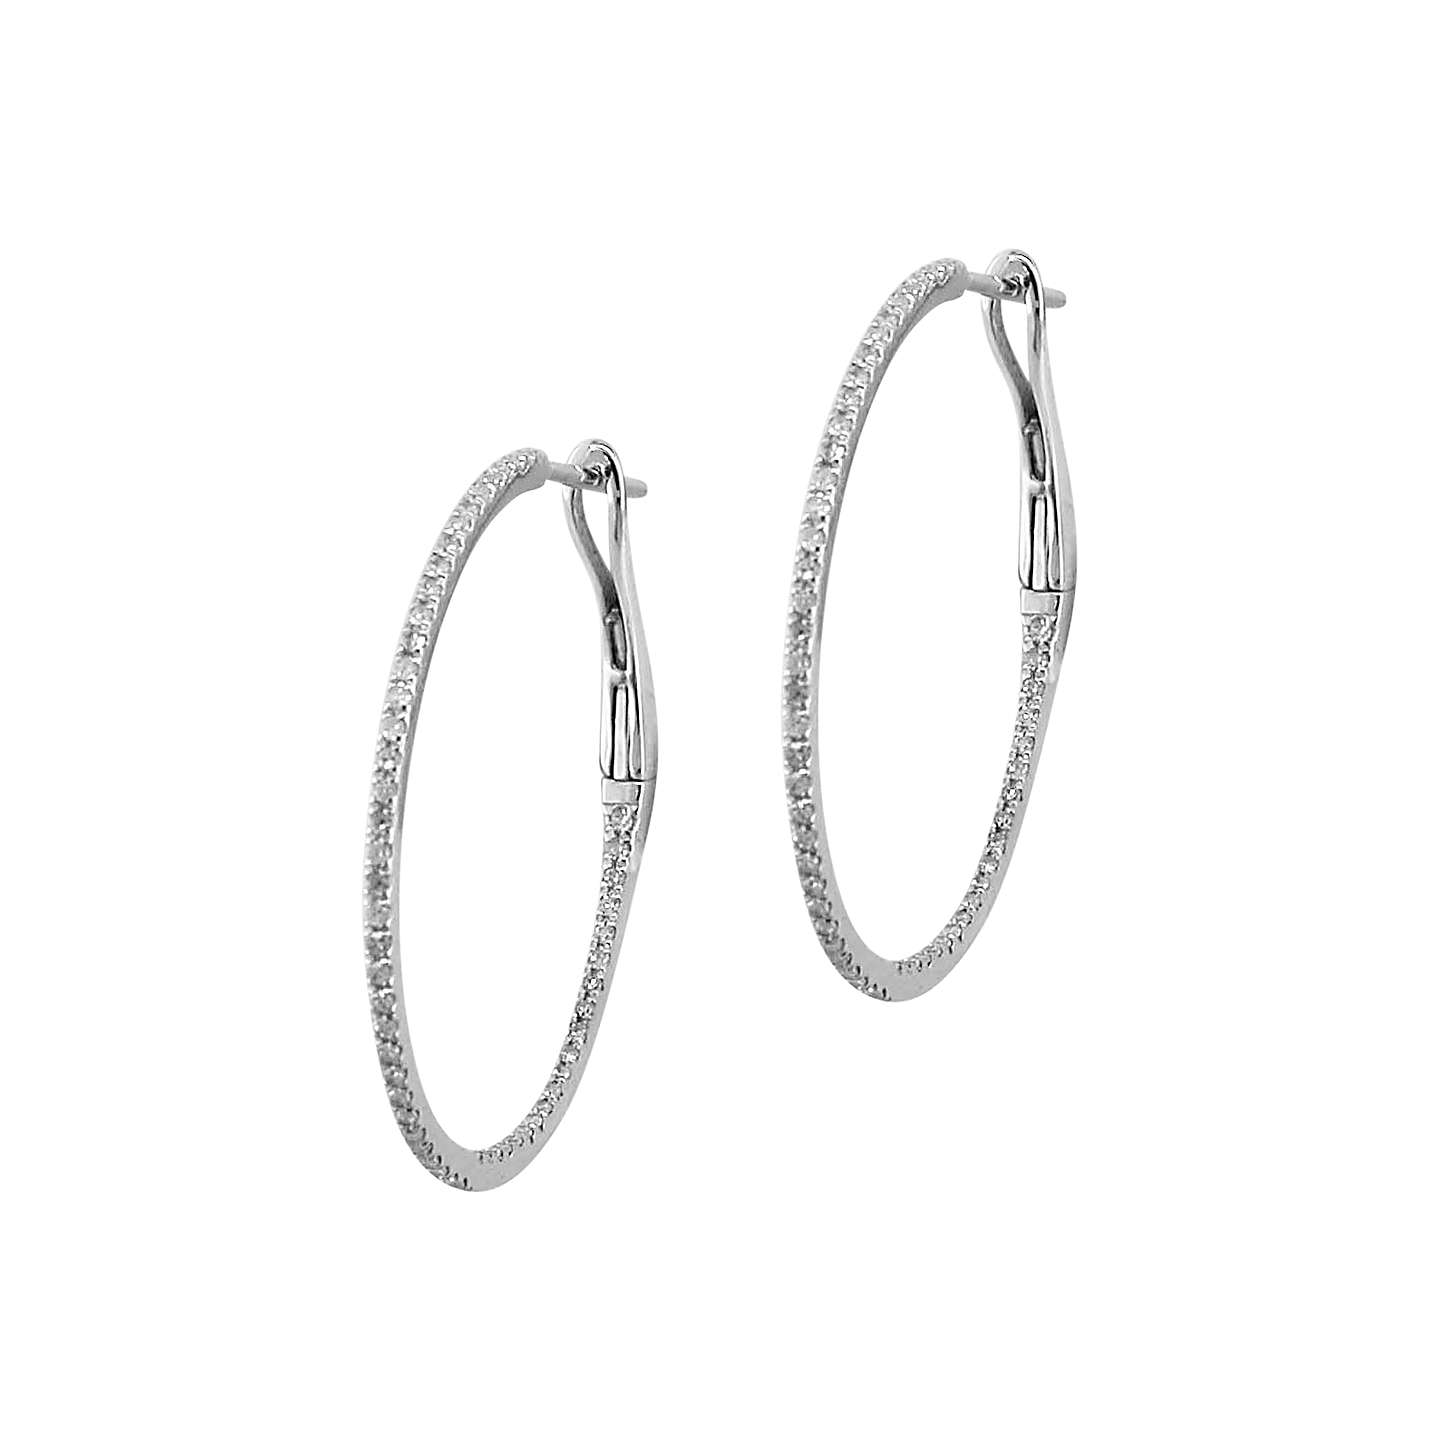 Ewa 18ct White Gold Diamond Row Hoop Earrings 0 29ct Online At